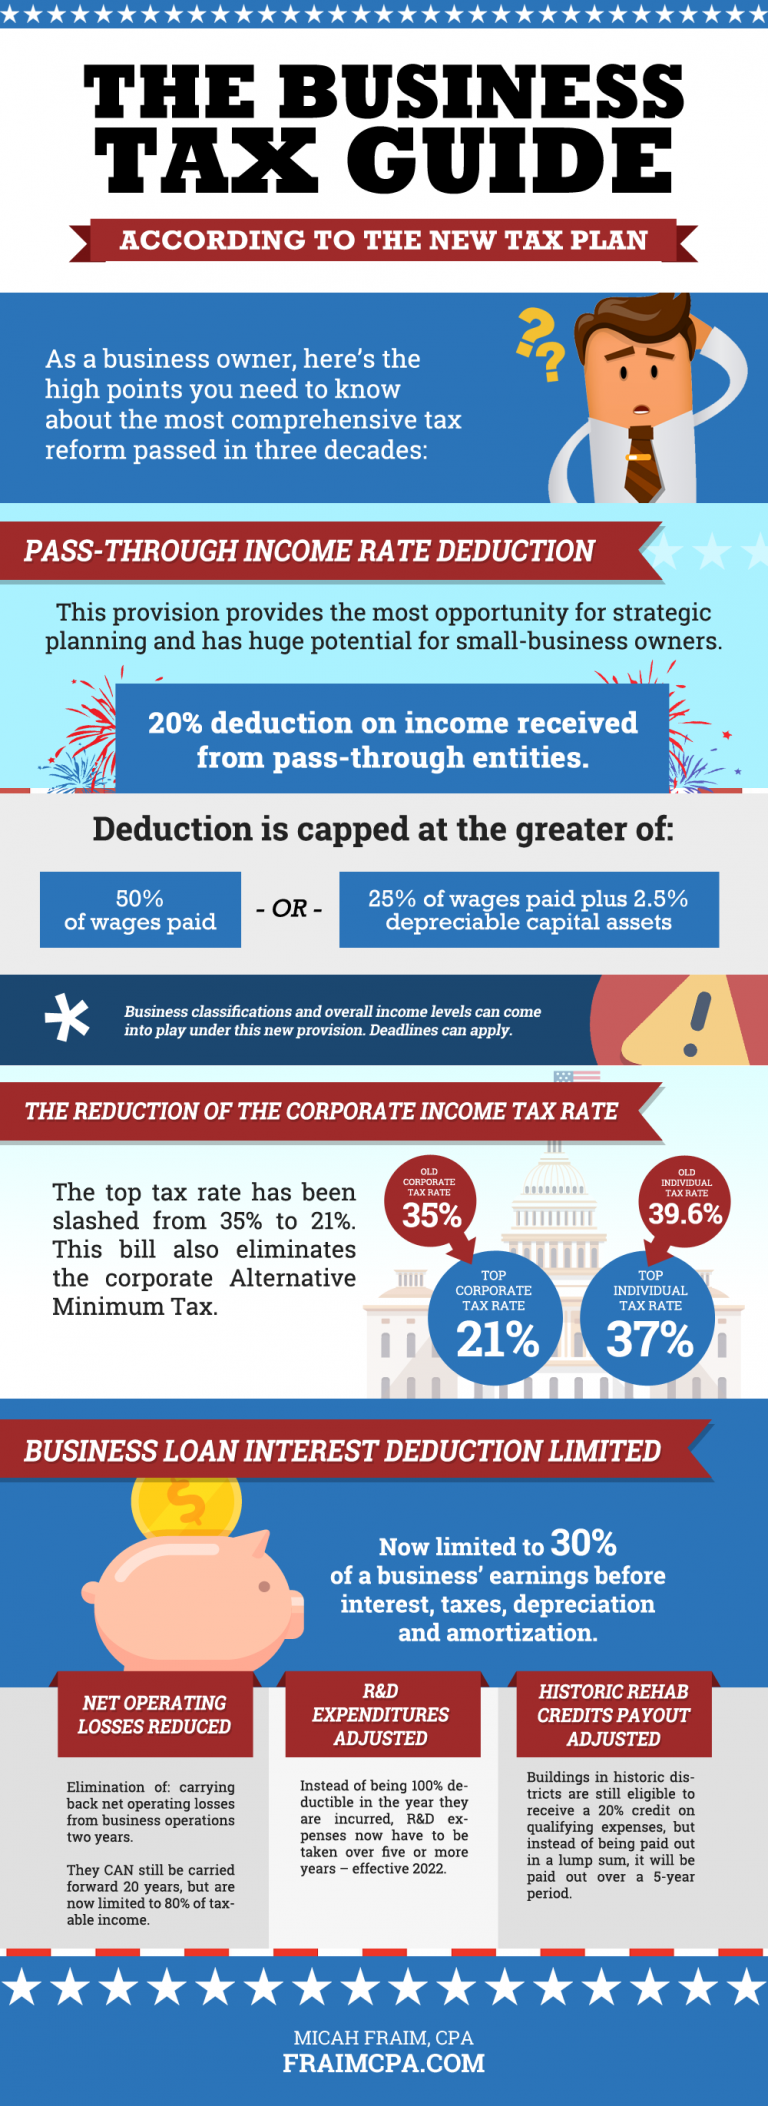 The New Tax Plan Explained in 1 Infographic